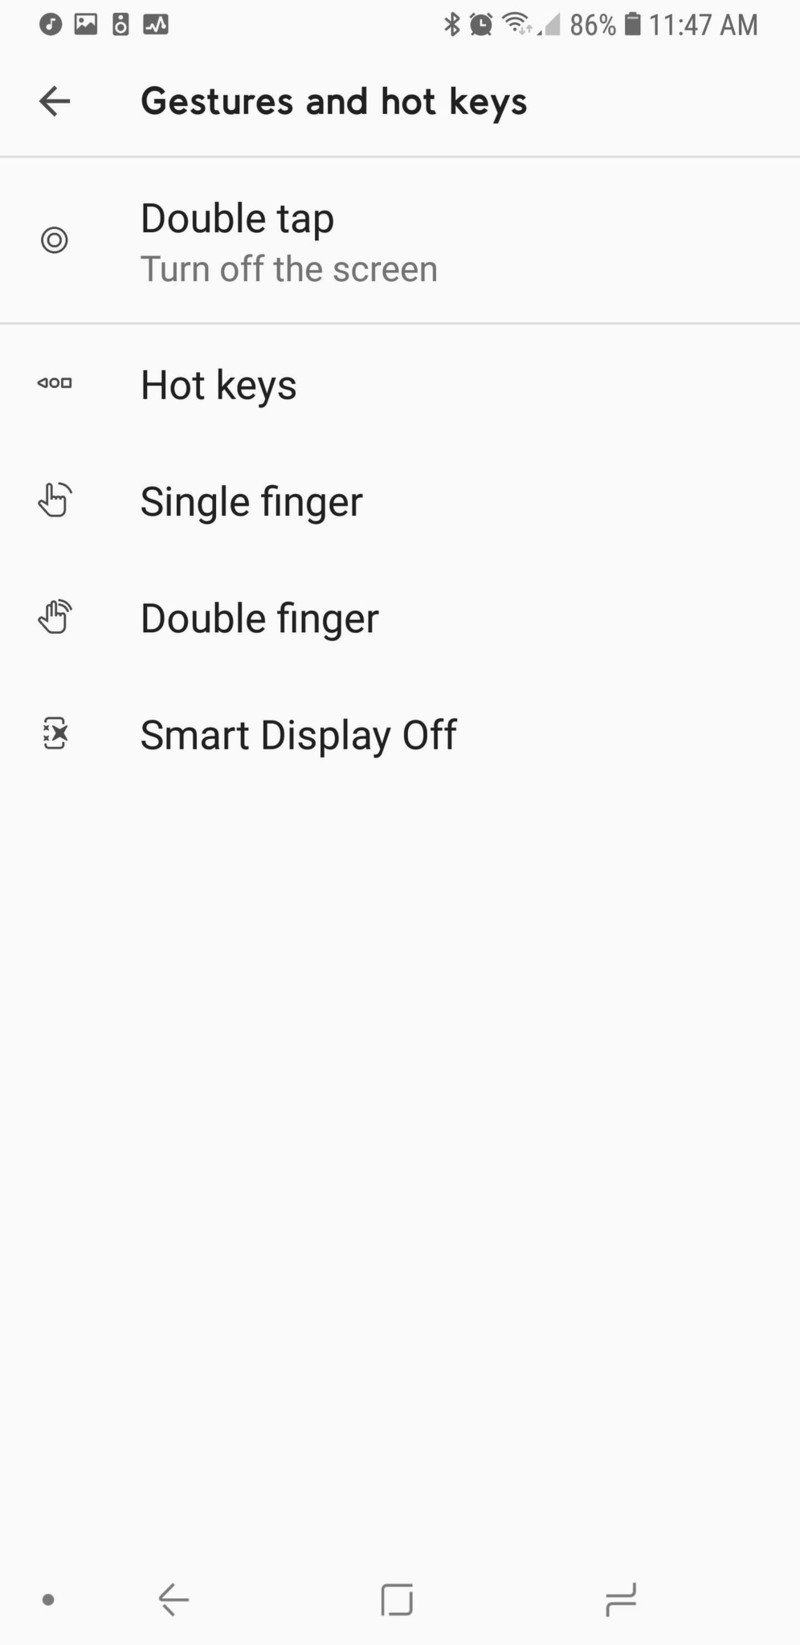 smart-launcher-5-gestures-menu.jpg?itok=